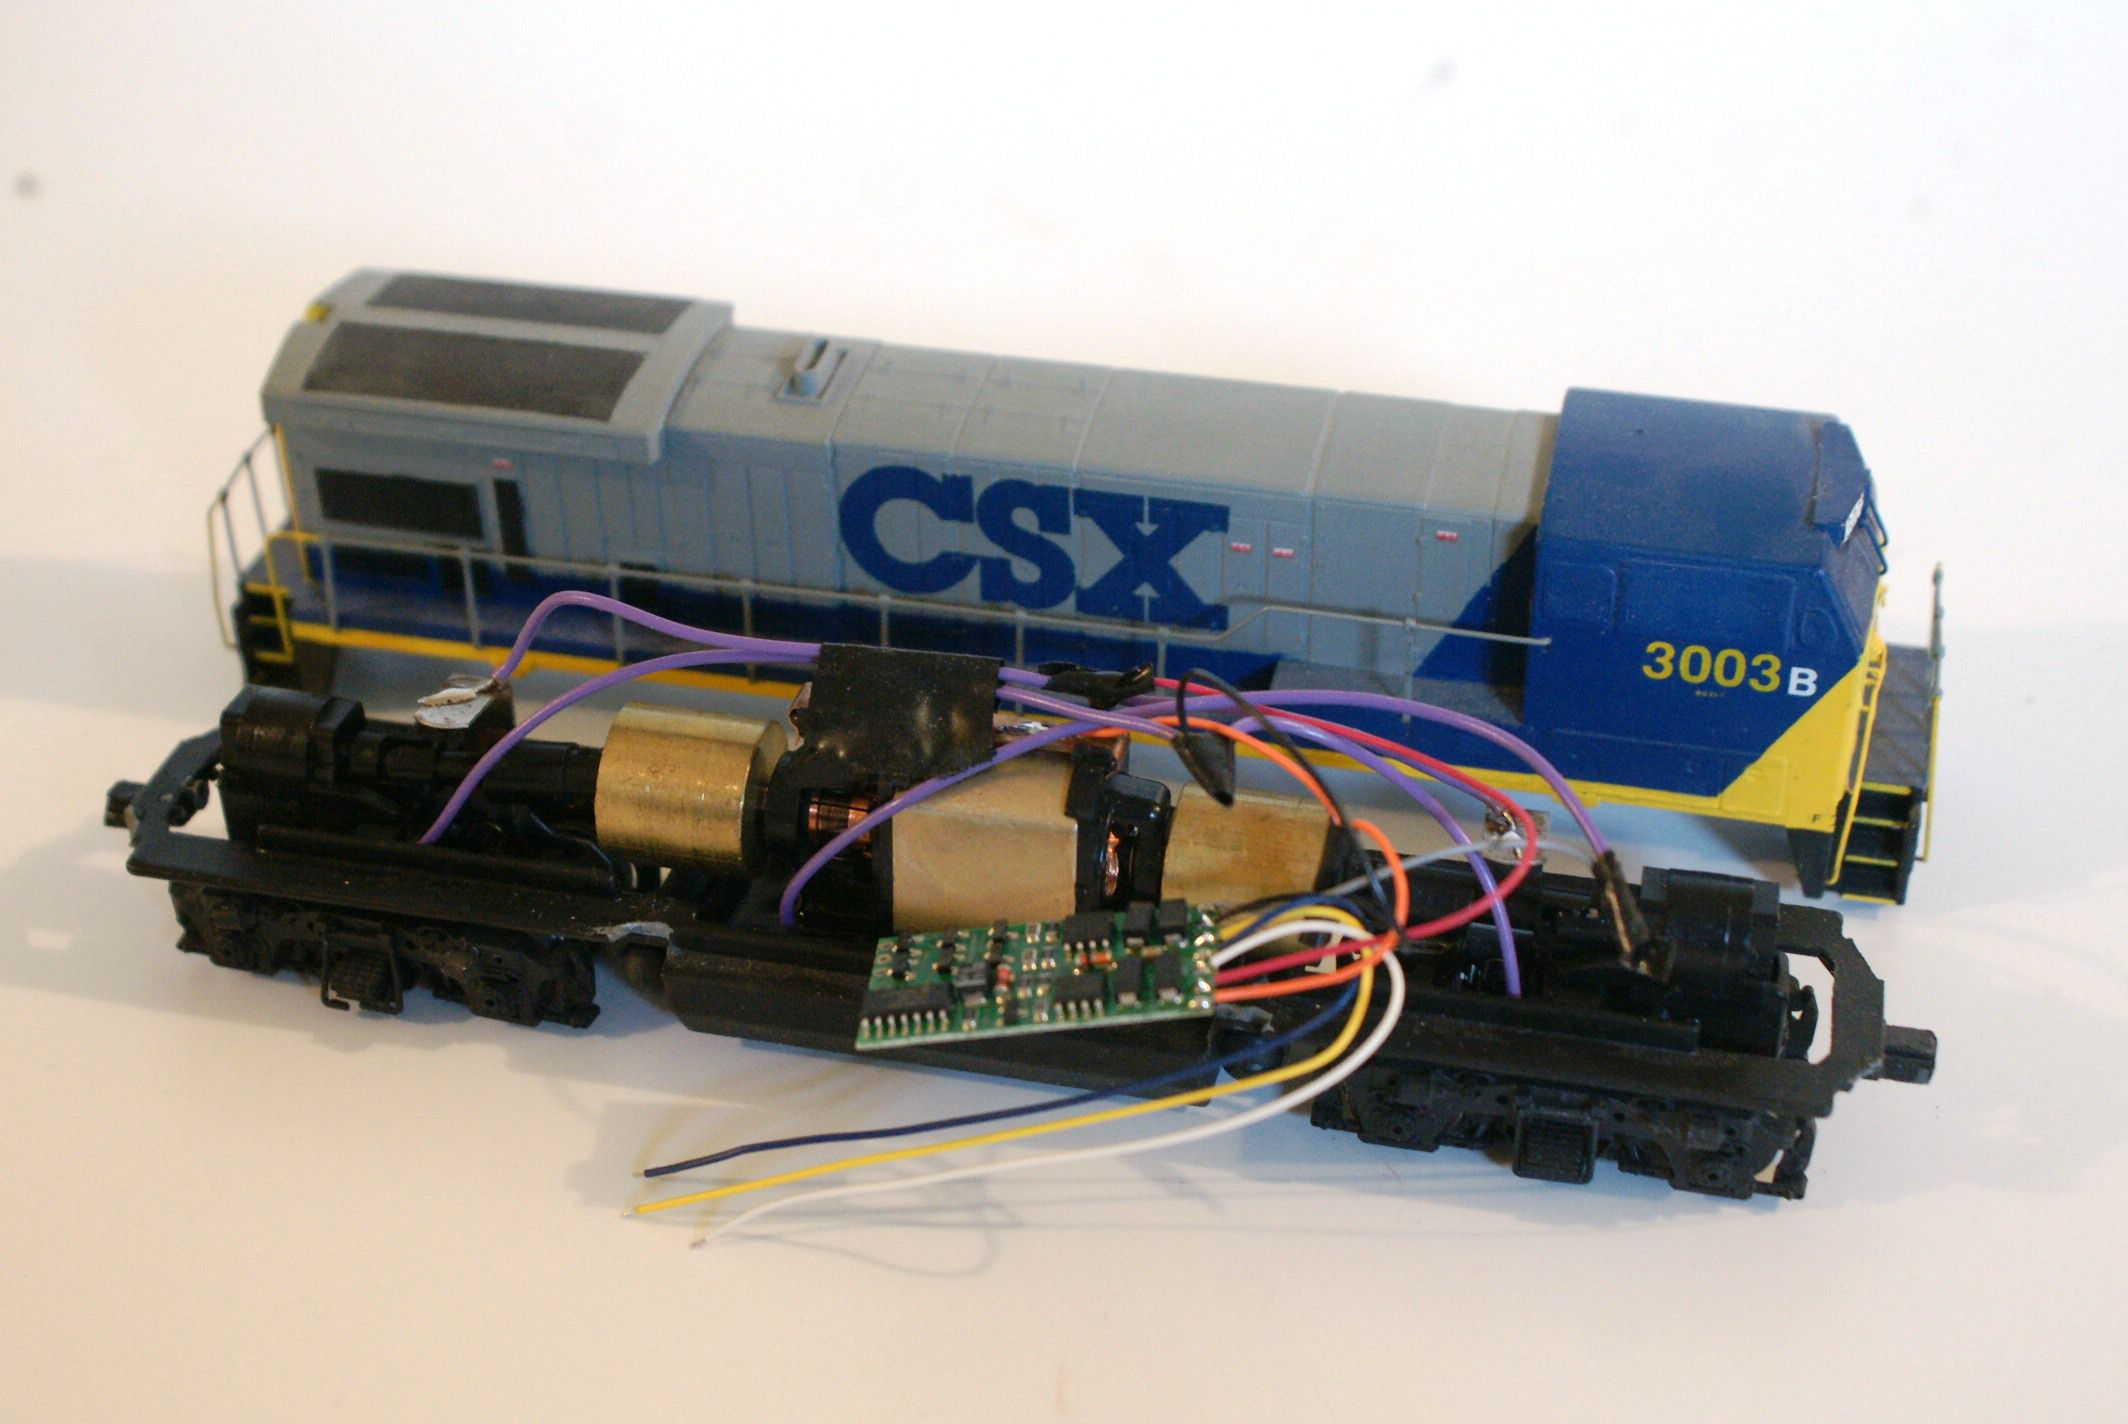 An Overview Of Digital Command Control Dcc More Model Train Circuits Led Flashing Lights Models Hobby